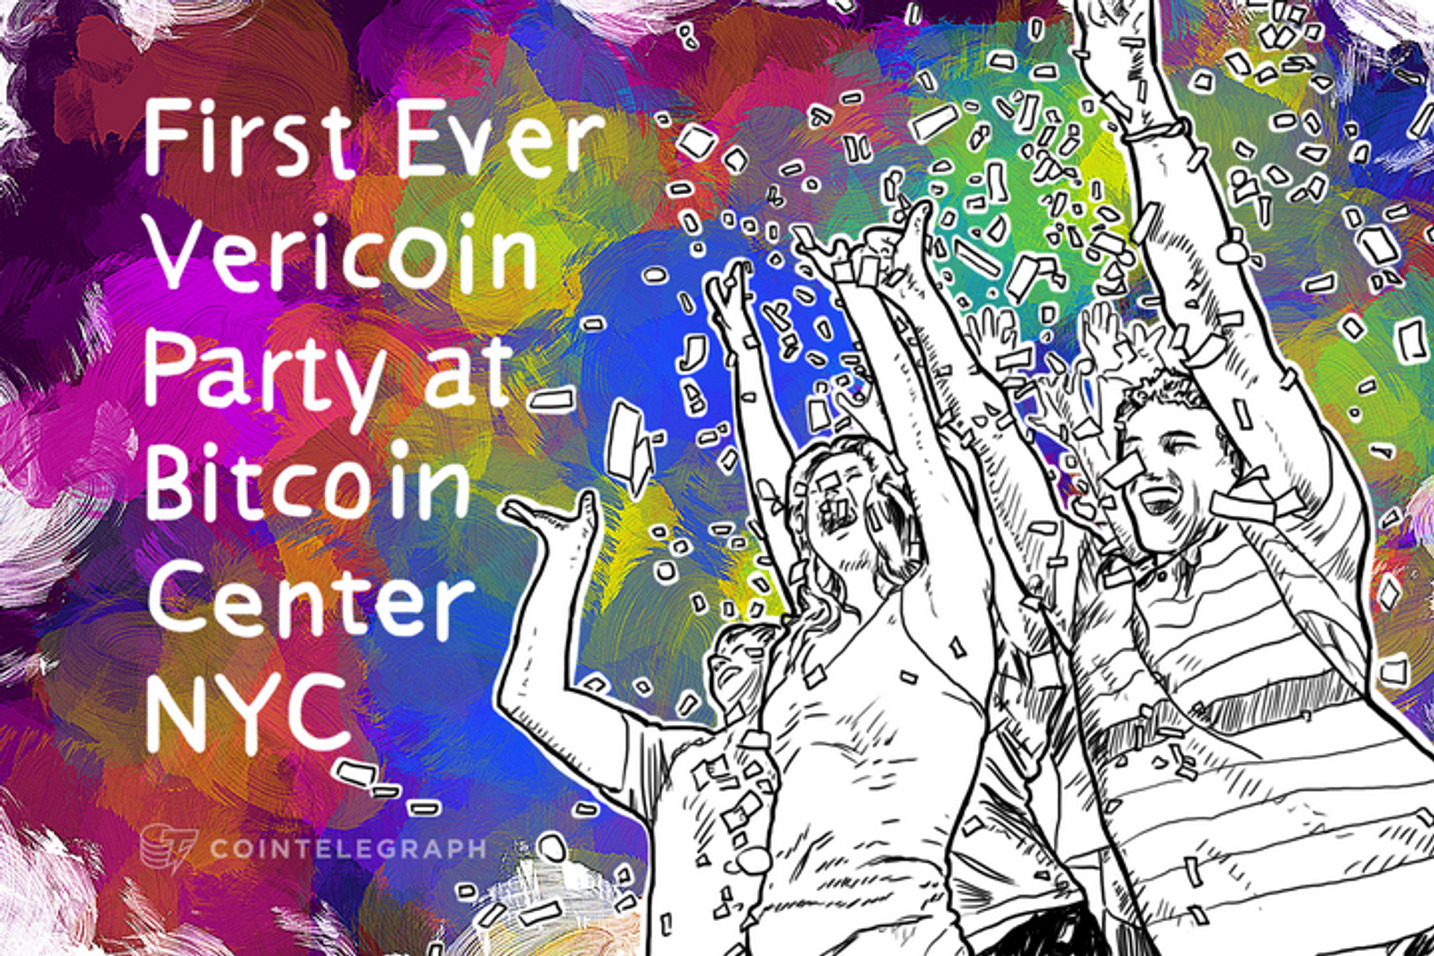 First Ever Vericoin Party at Bitcoin Center NYC